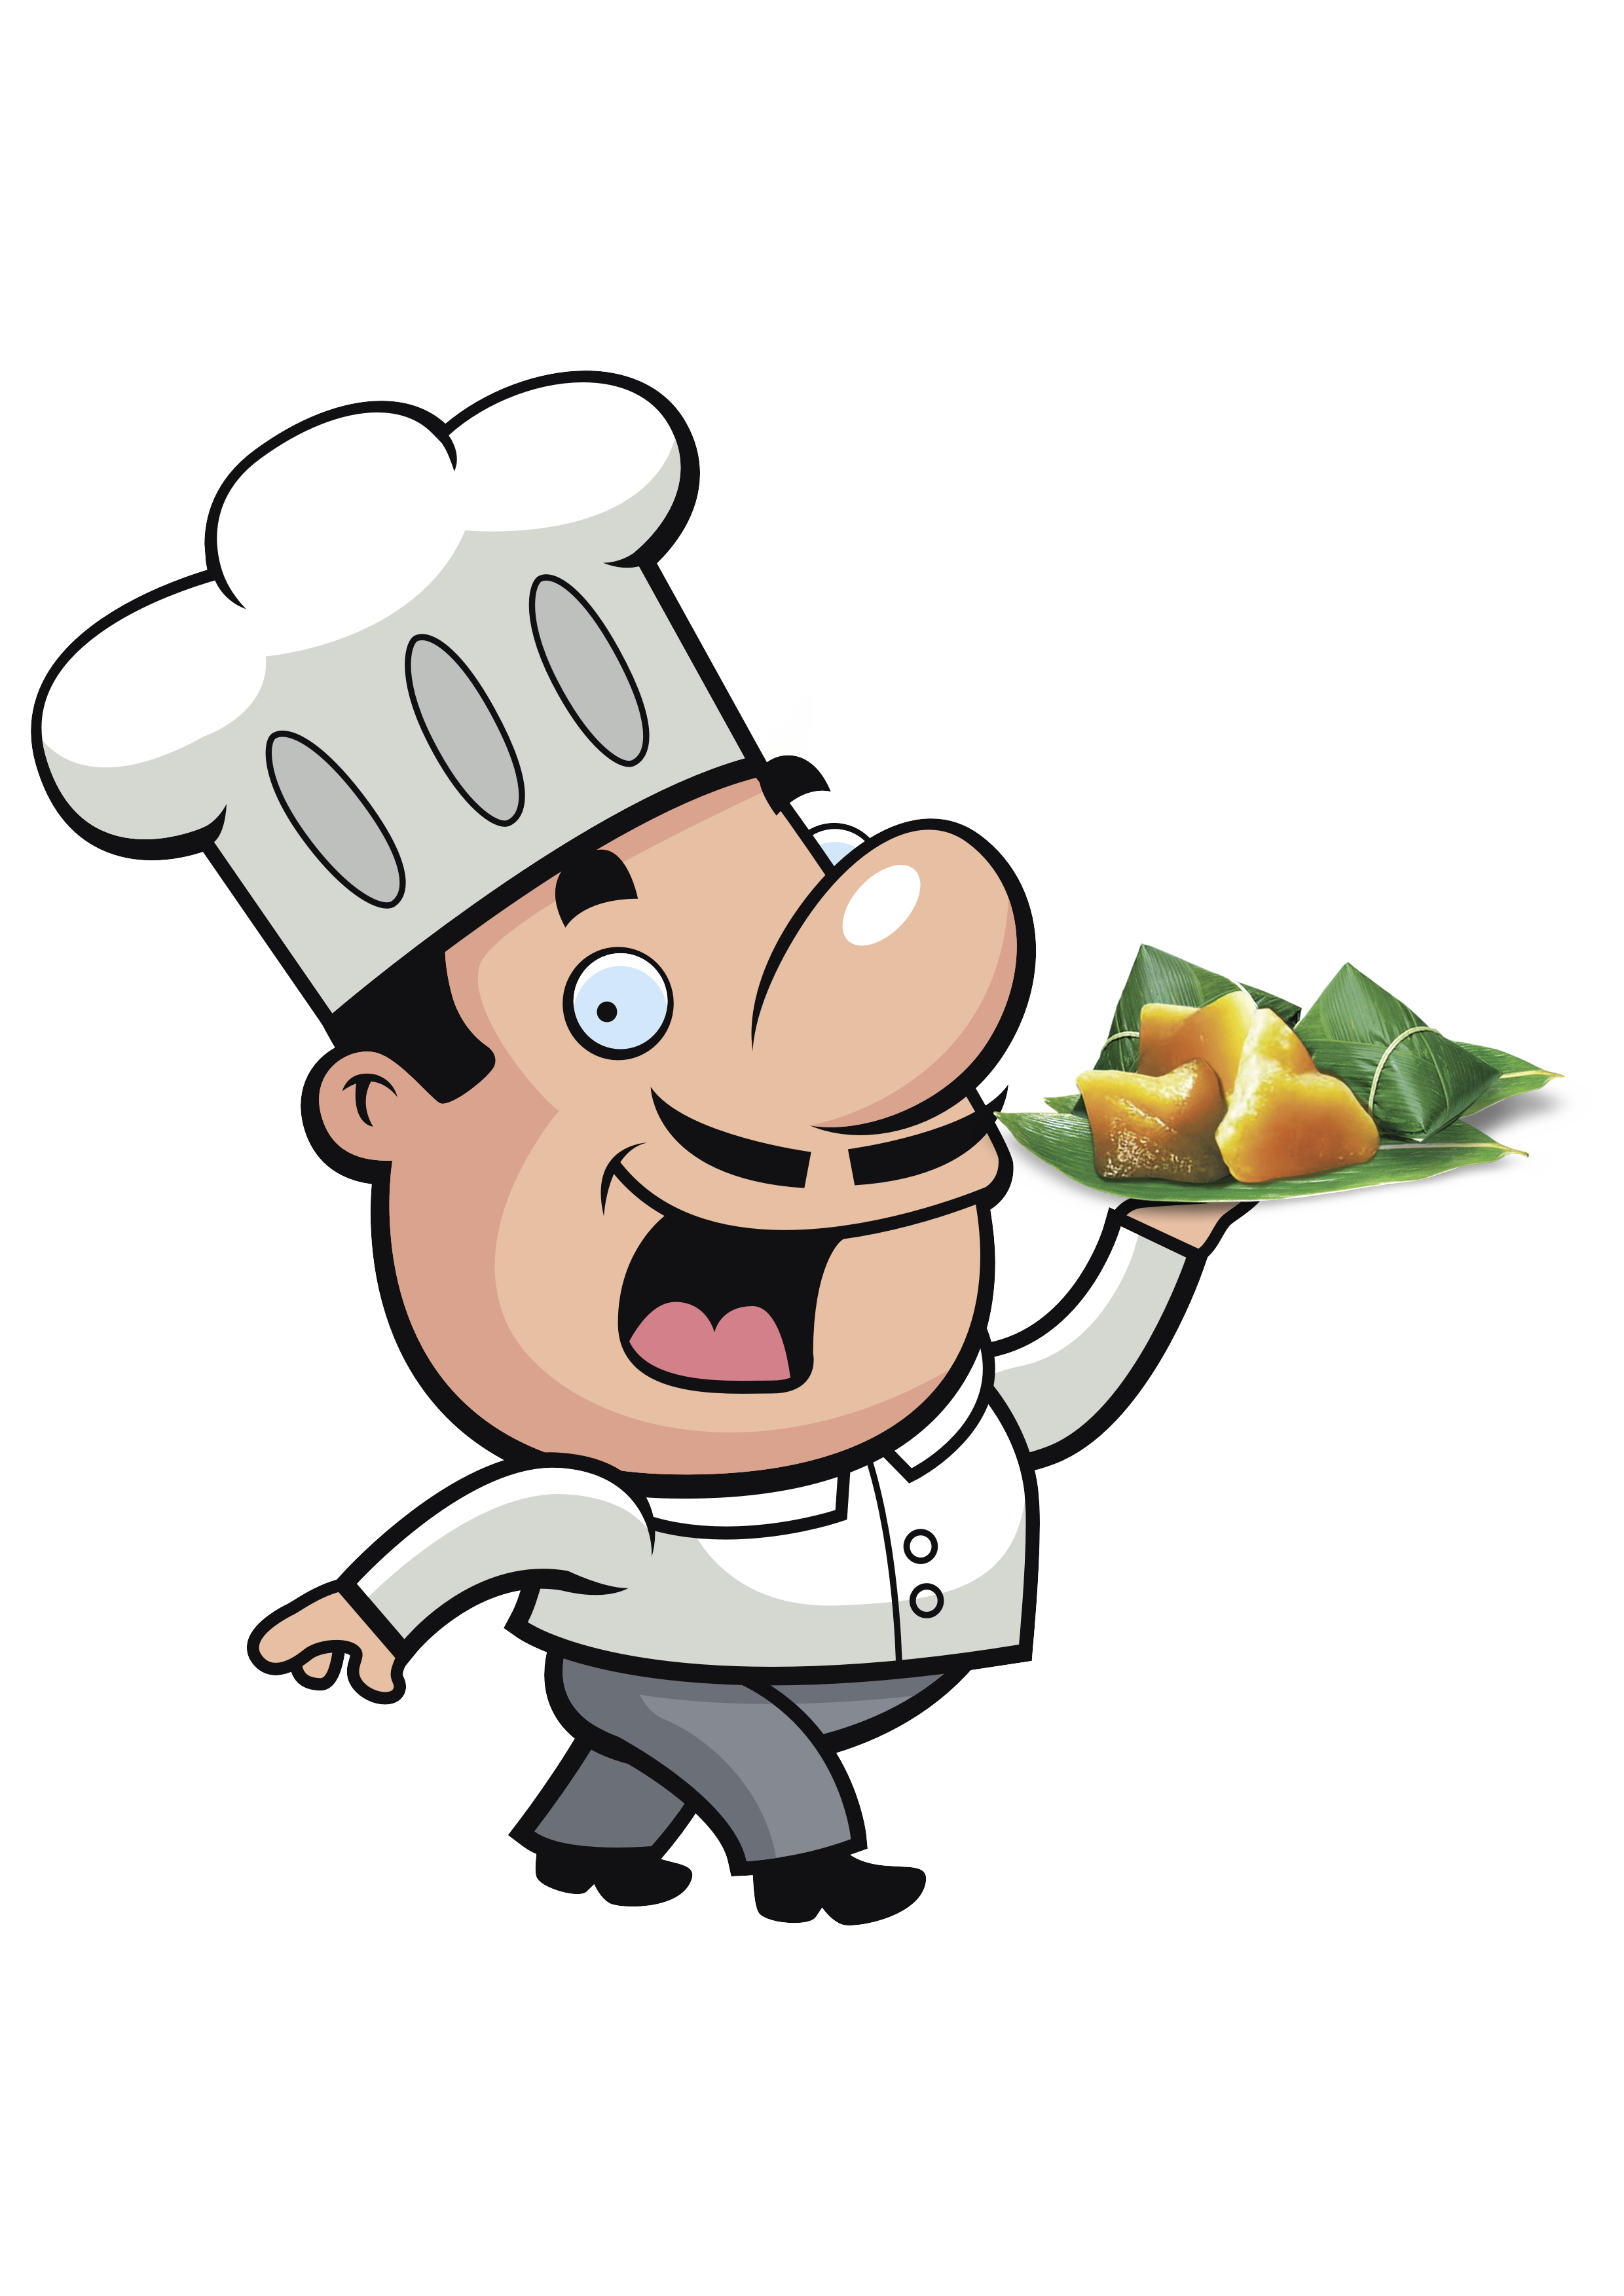 clipart free Pizza chef cooking clip. Chefs clipart hand